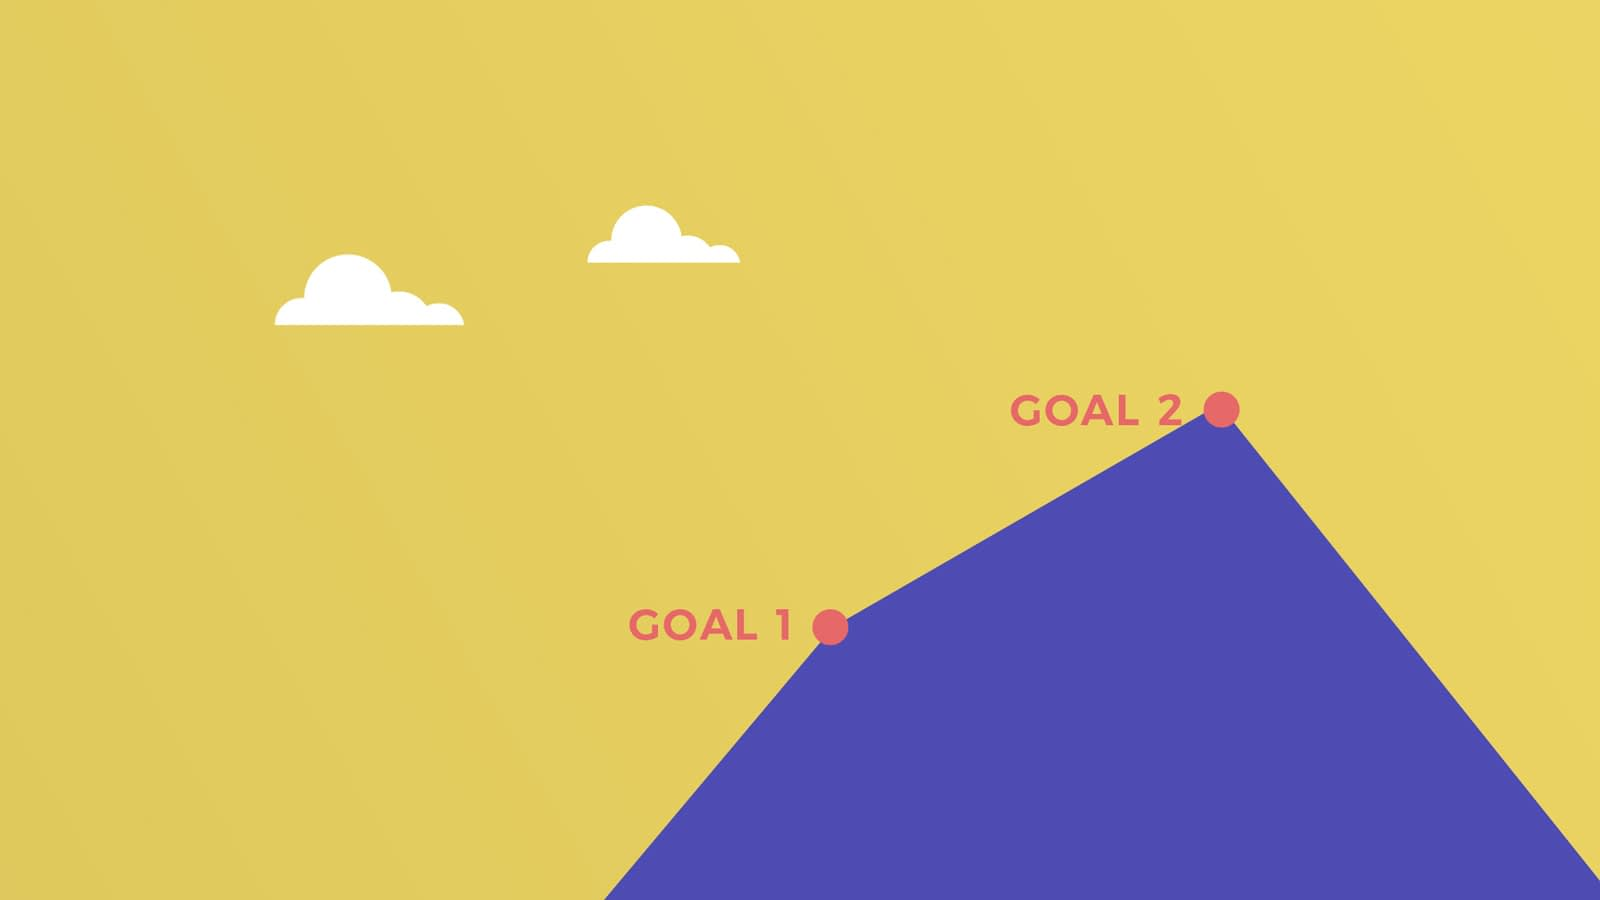 Mountain with 2 goals for a transition to a vegan life